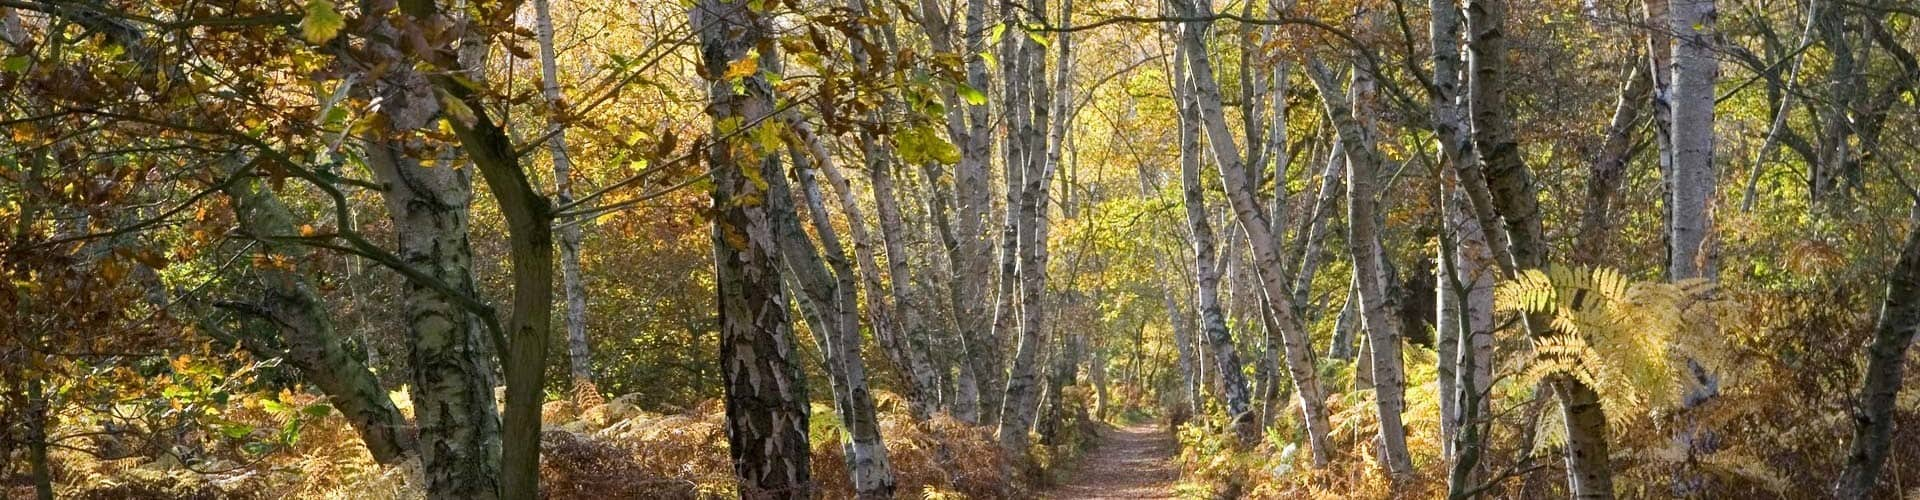 Email0Facebook0Twitter0Reddit0X Linkedin0 Stumbleupon0 The gate to heaven is a tunnel of birch trees. There is no photo of God's Gate but this silver birch forest offers a glimpse My family has […]